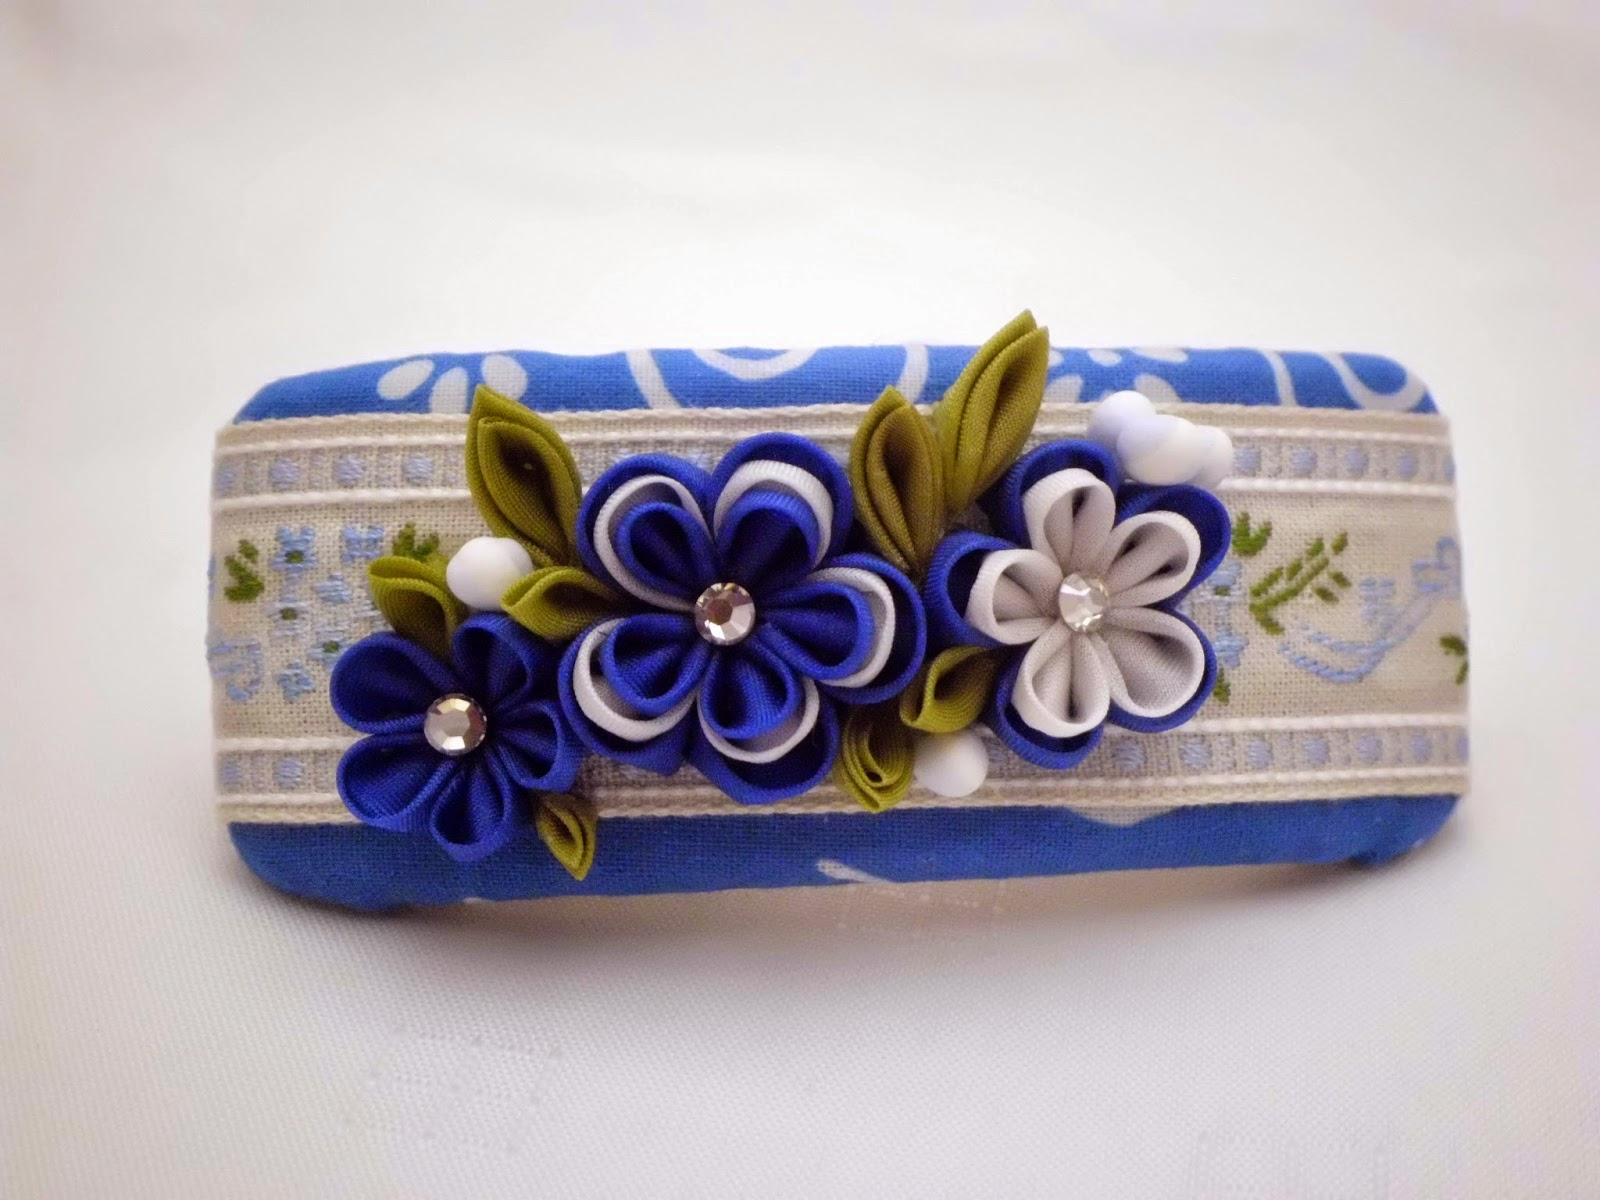 https://www.etsy.com/listing/220892602/handmade-french-barrette-blue-white